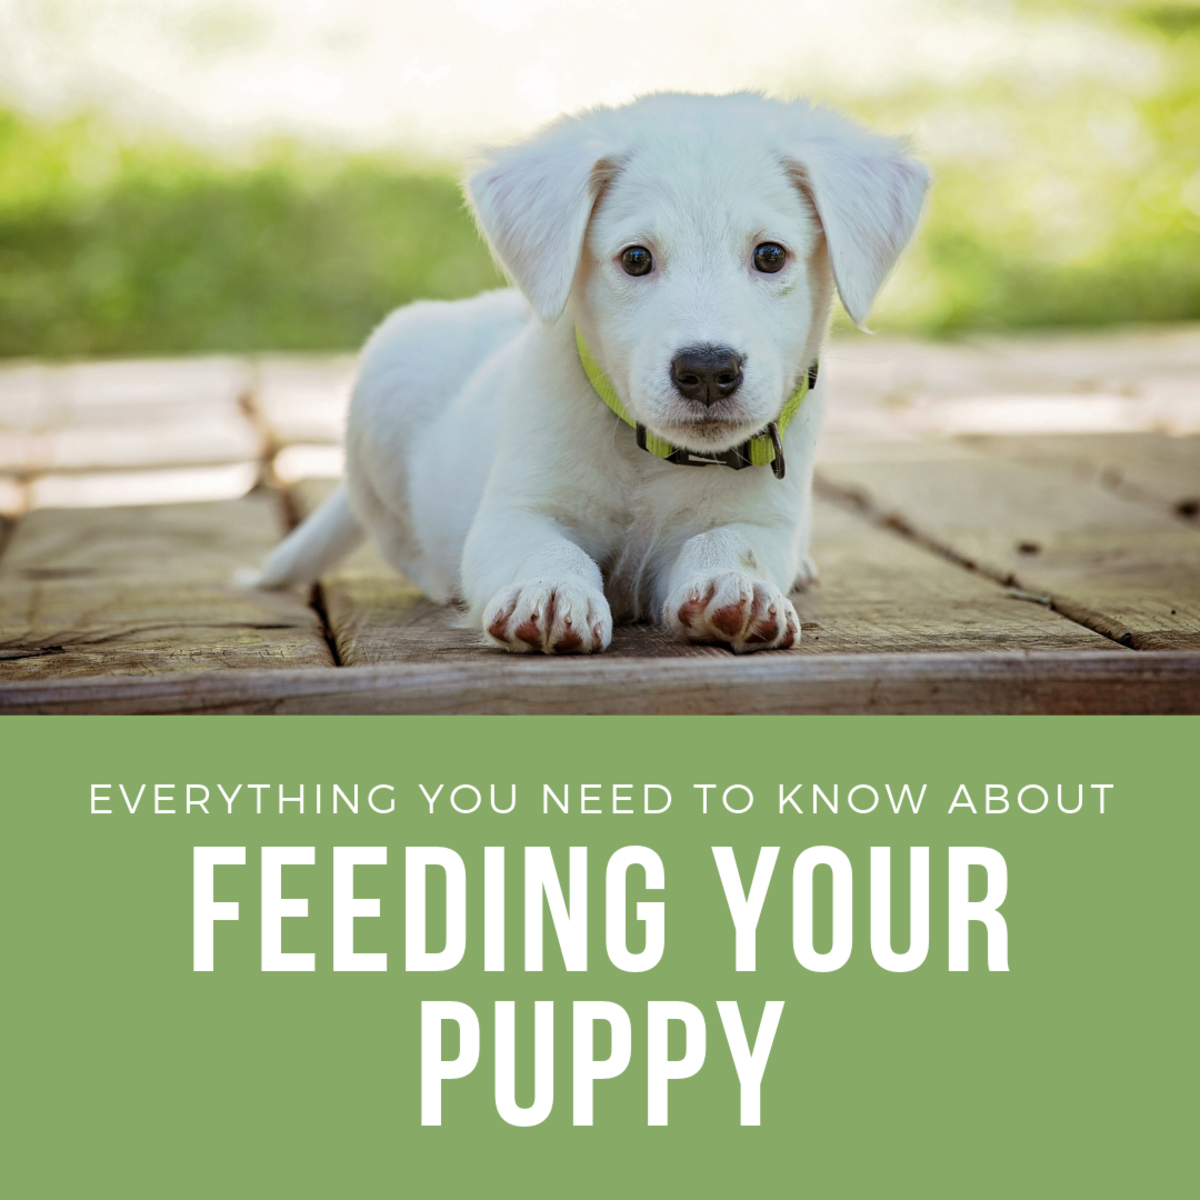 Everything You Need to Know About Feeding a Puppy